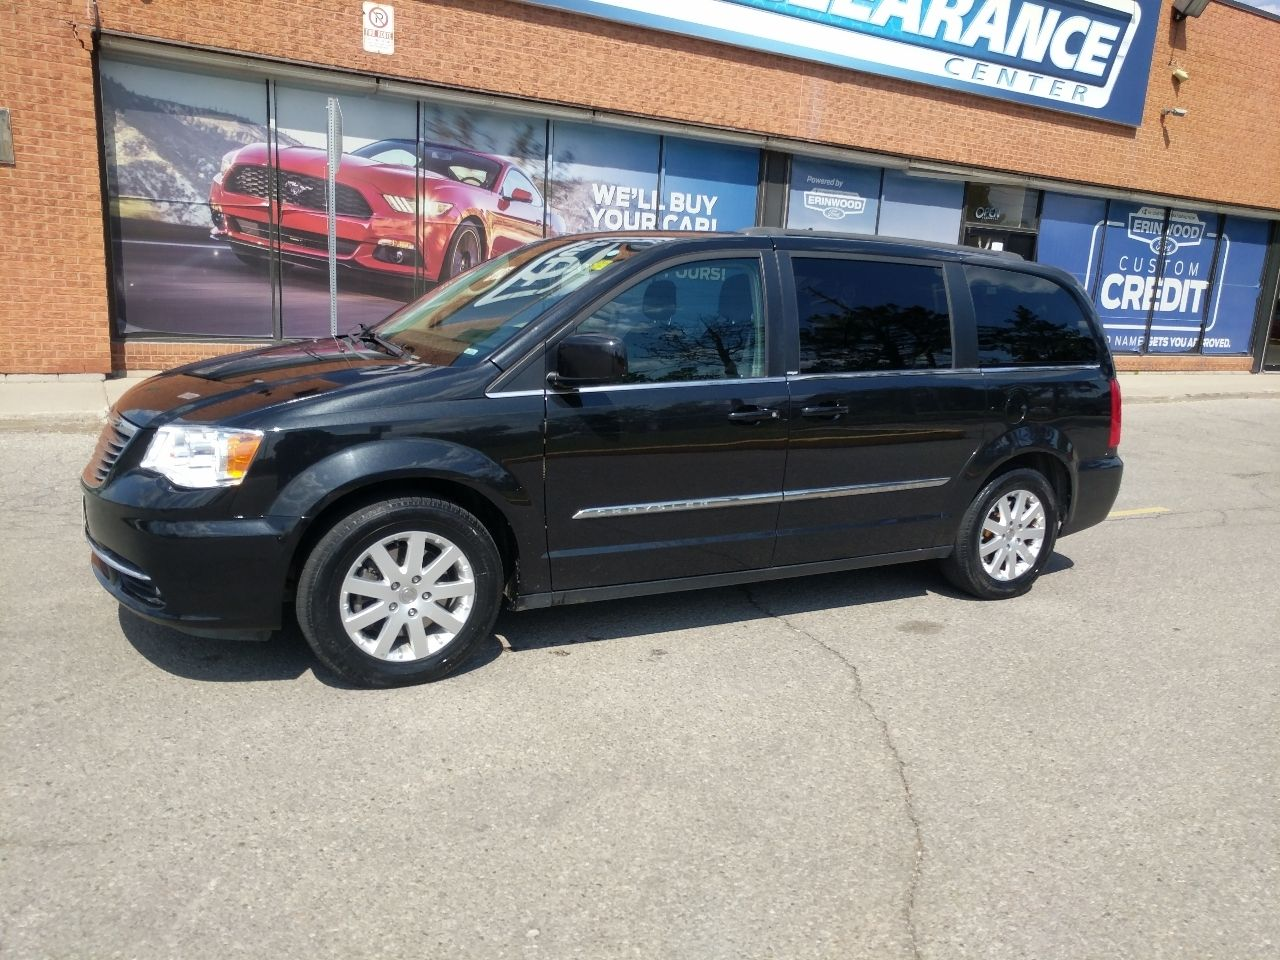 2014 Chrysler Town & Country Image